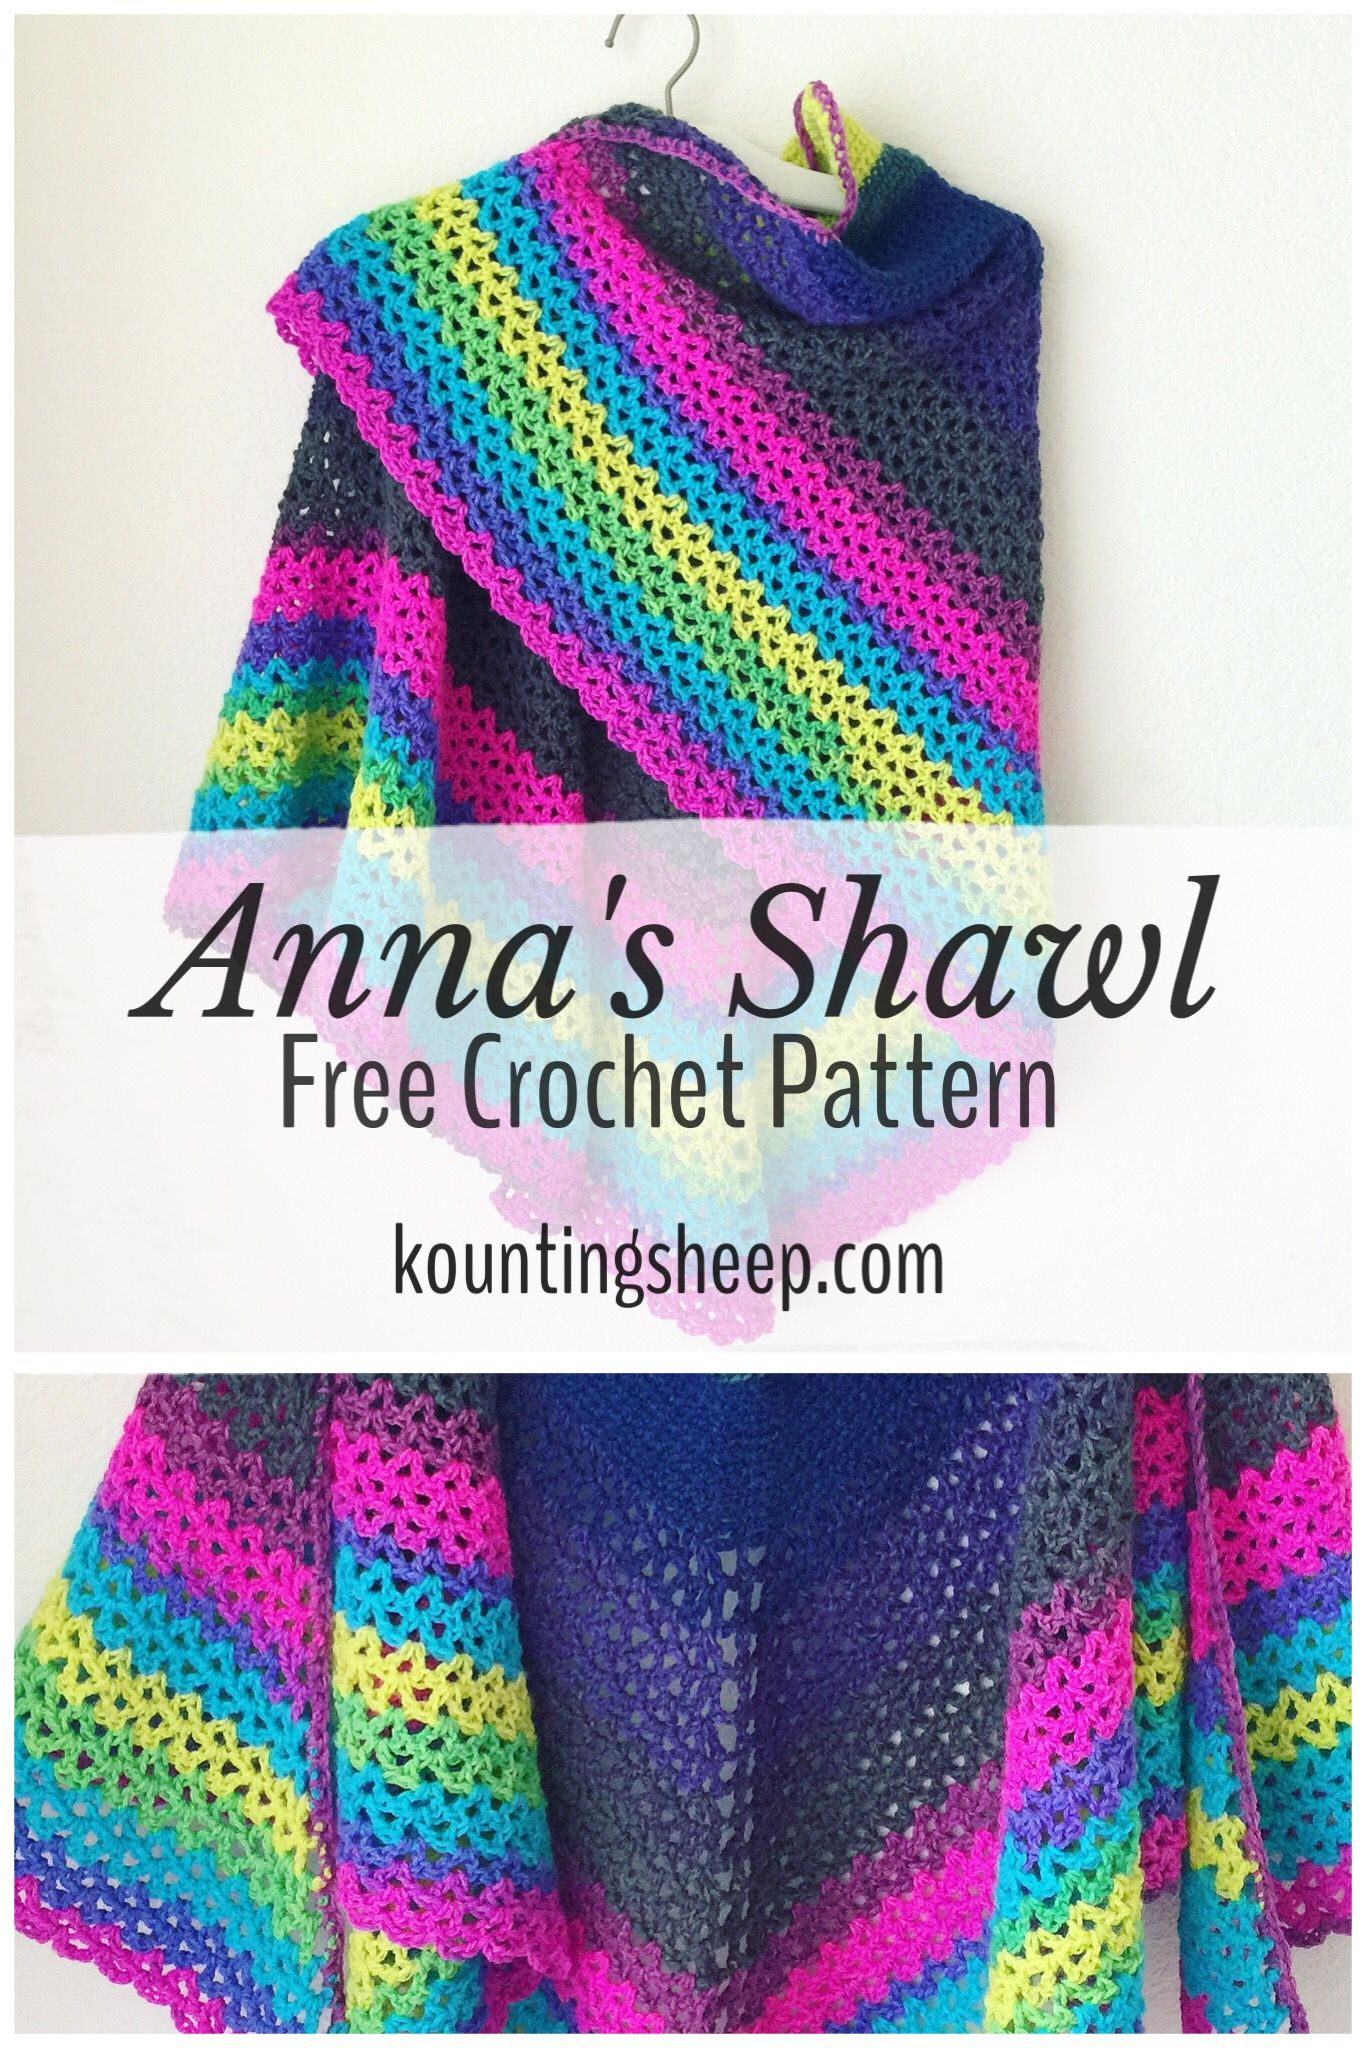 Annas Shawl Free Crochet Pattern Free Crochet Patterns